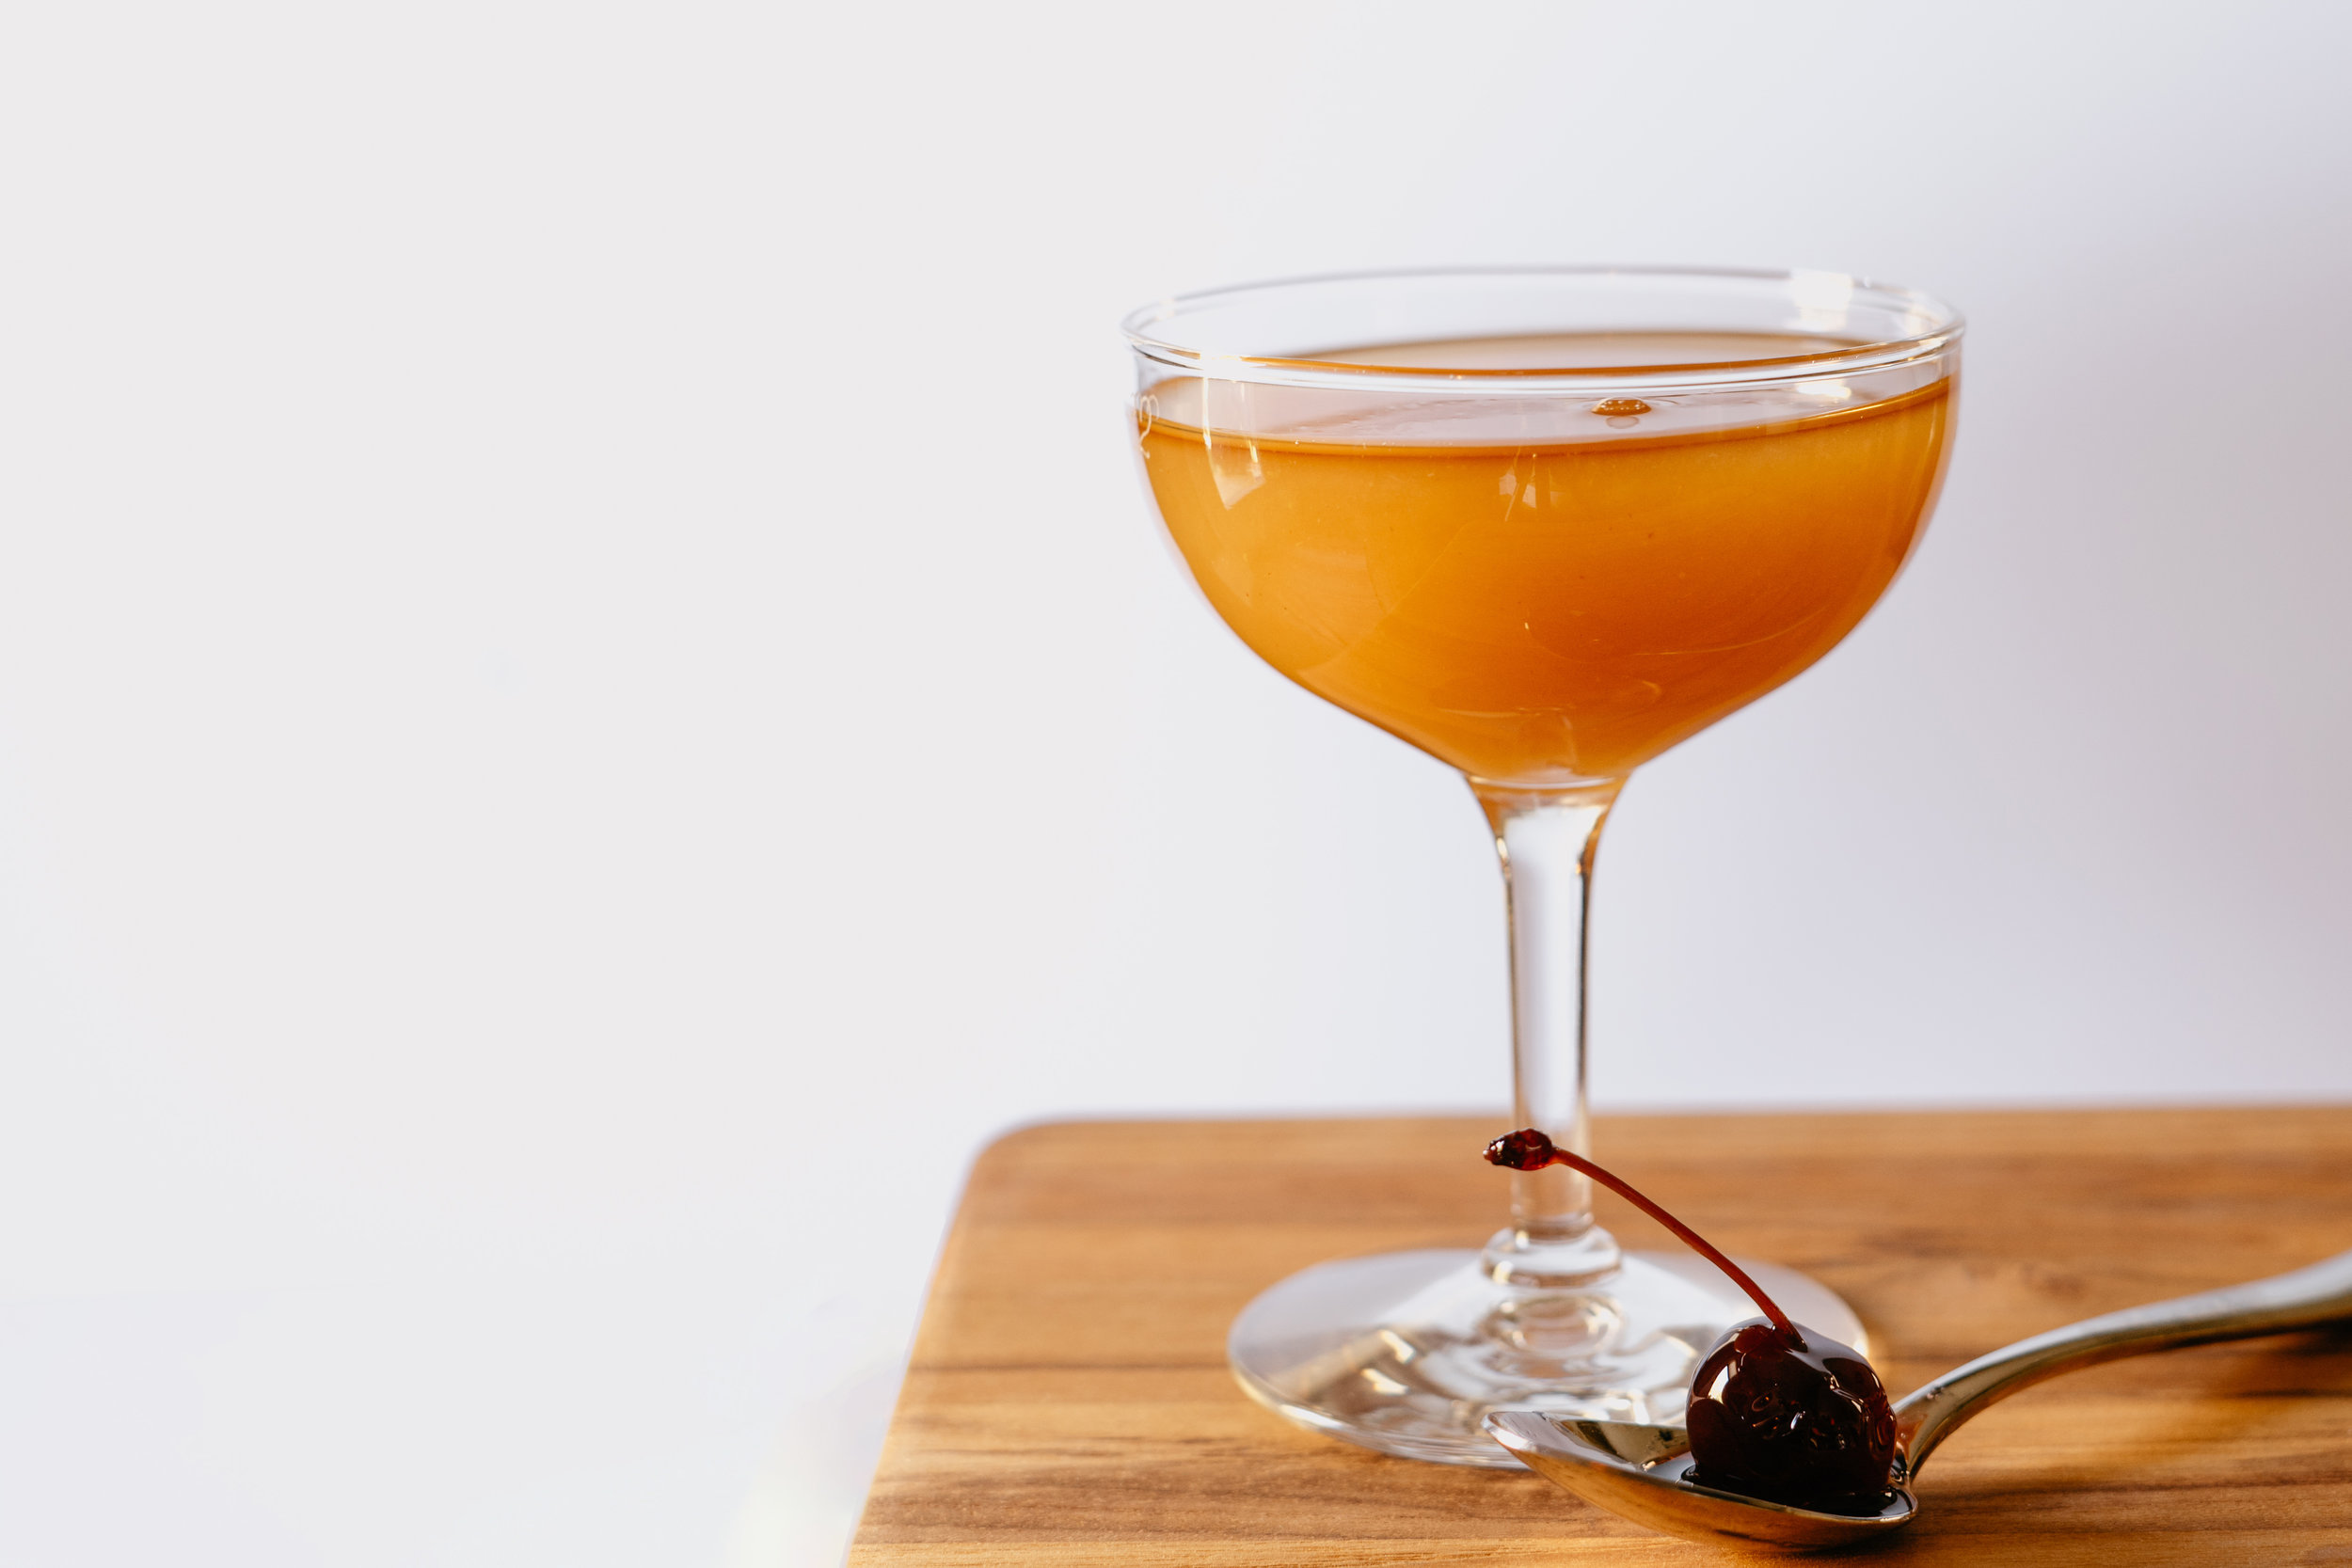 Coffee Whiskey Amaretto Sour - 1 oz coffee whiskey1 oz amaretto1 oz fresh orange juiceShake and strain. Serve with a cherry for garnish.